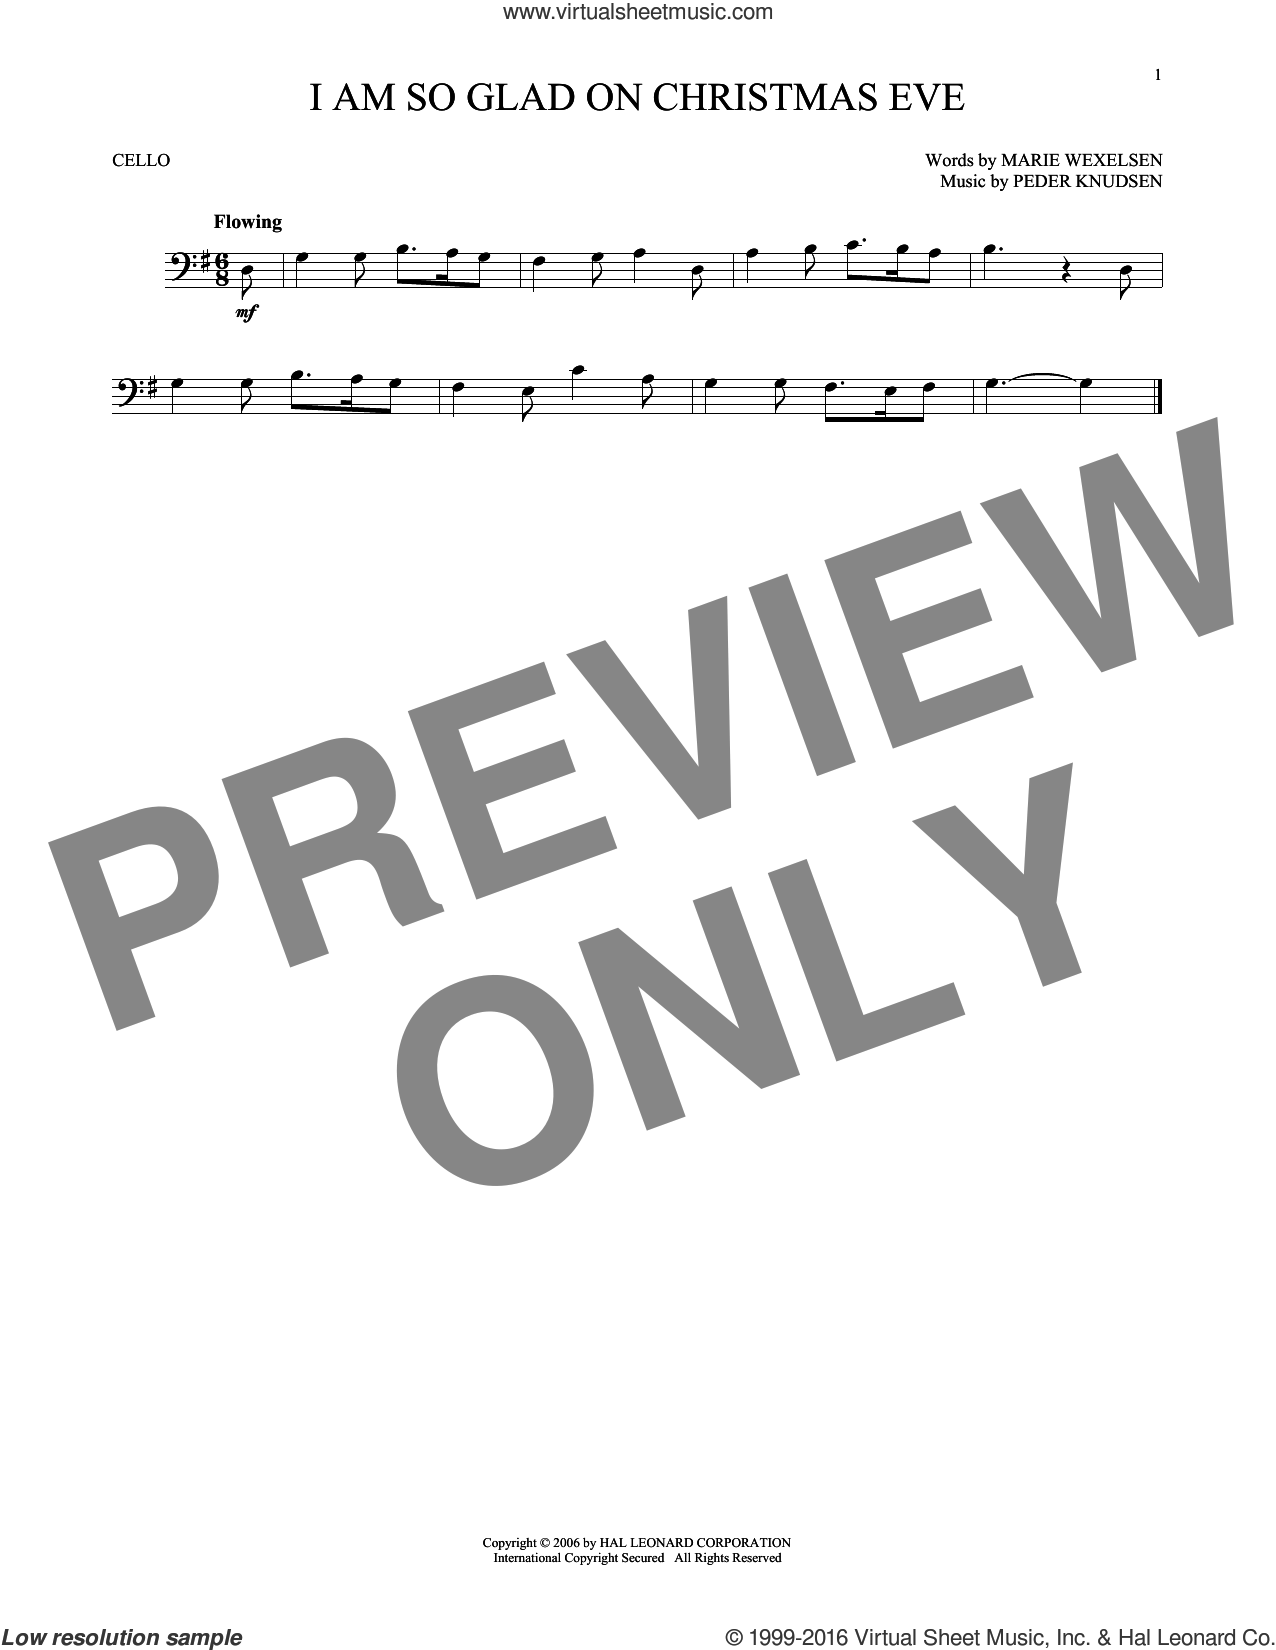 I Am So Glad On Christmas Eve sheet music for cello solo by Marie Wexelsen. Score Image Preview.